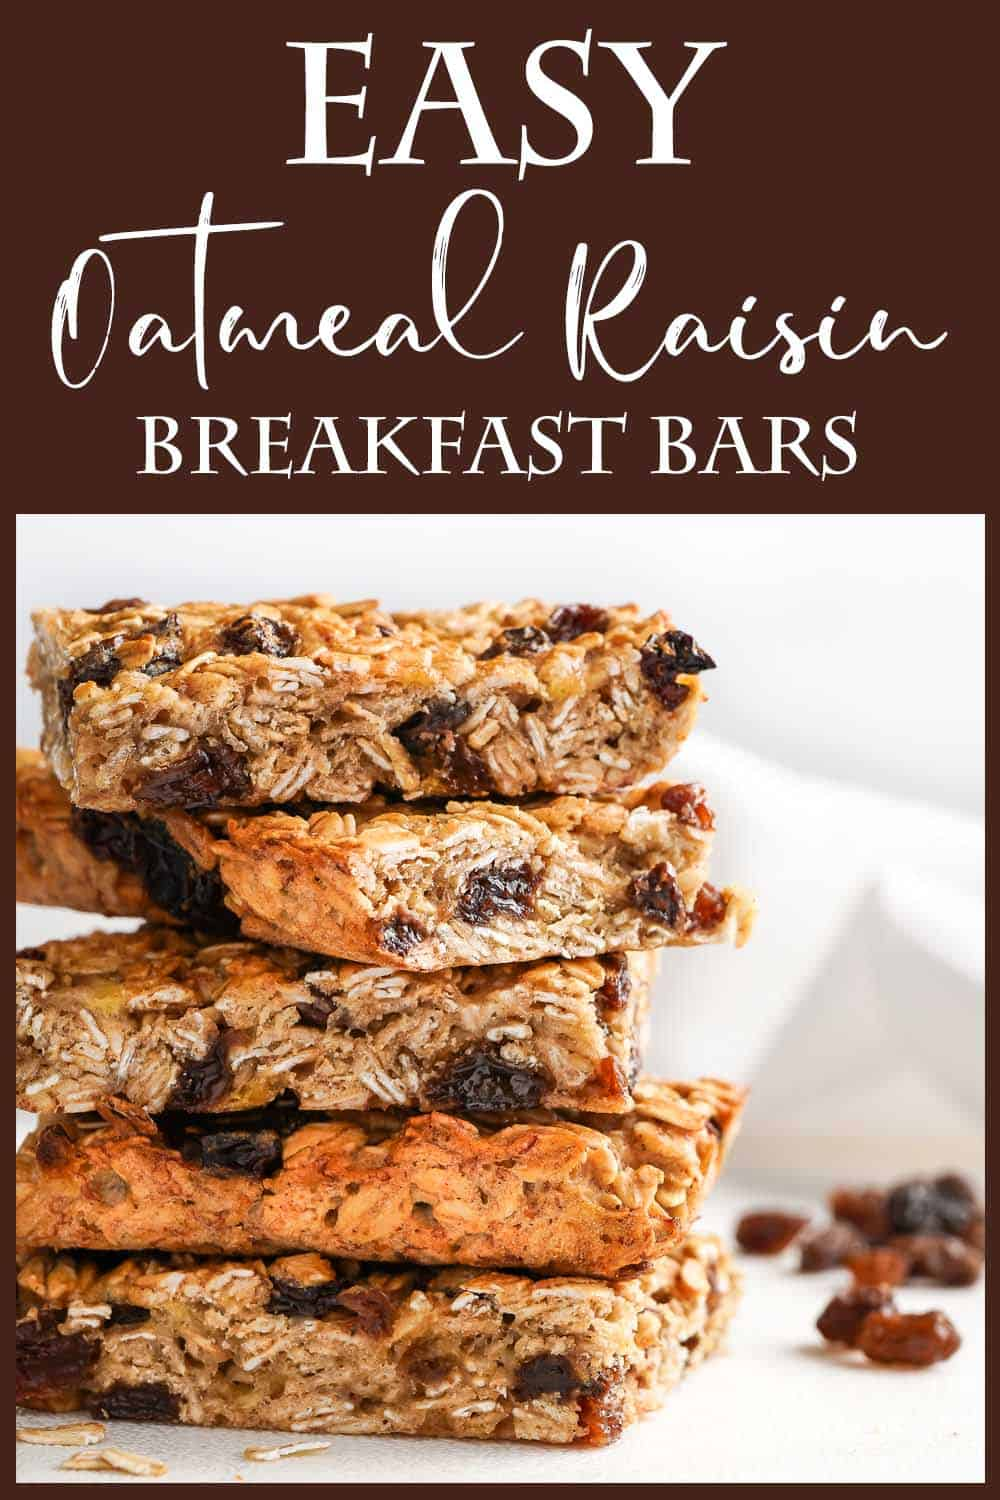 Easy Oatmeal Raisin Breakfast Bars in a stack with raisins on the side